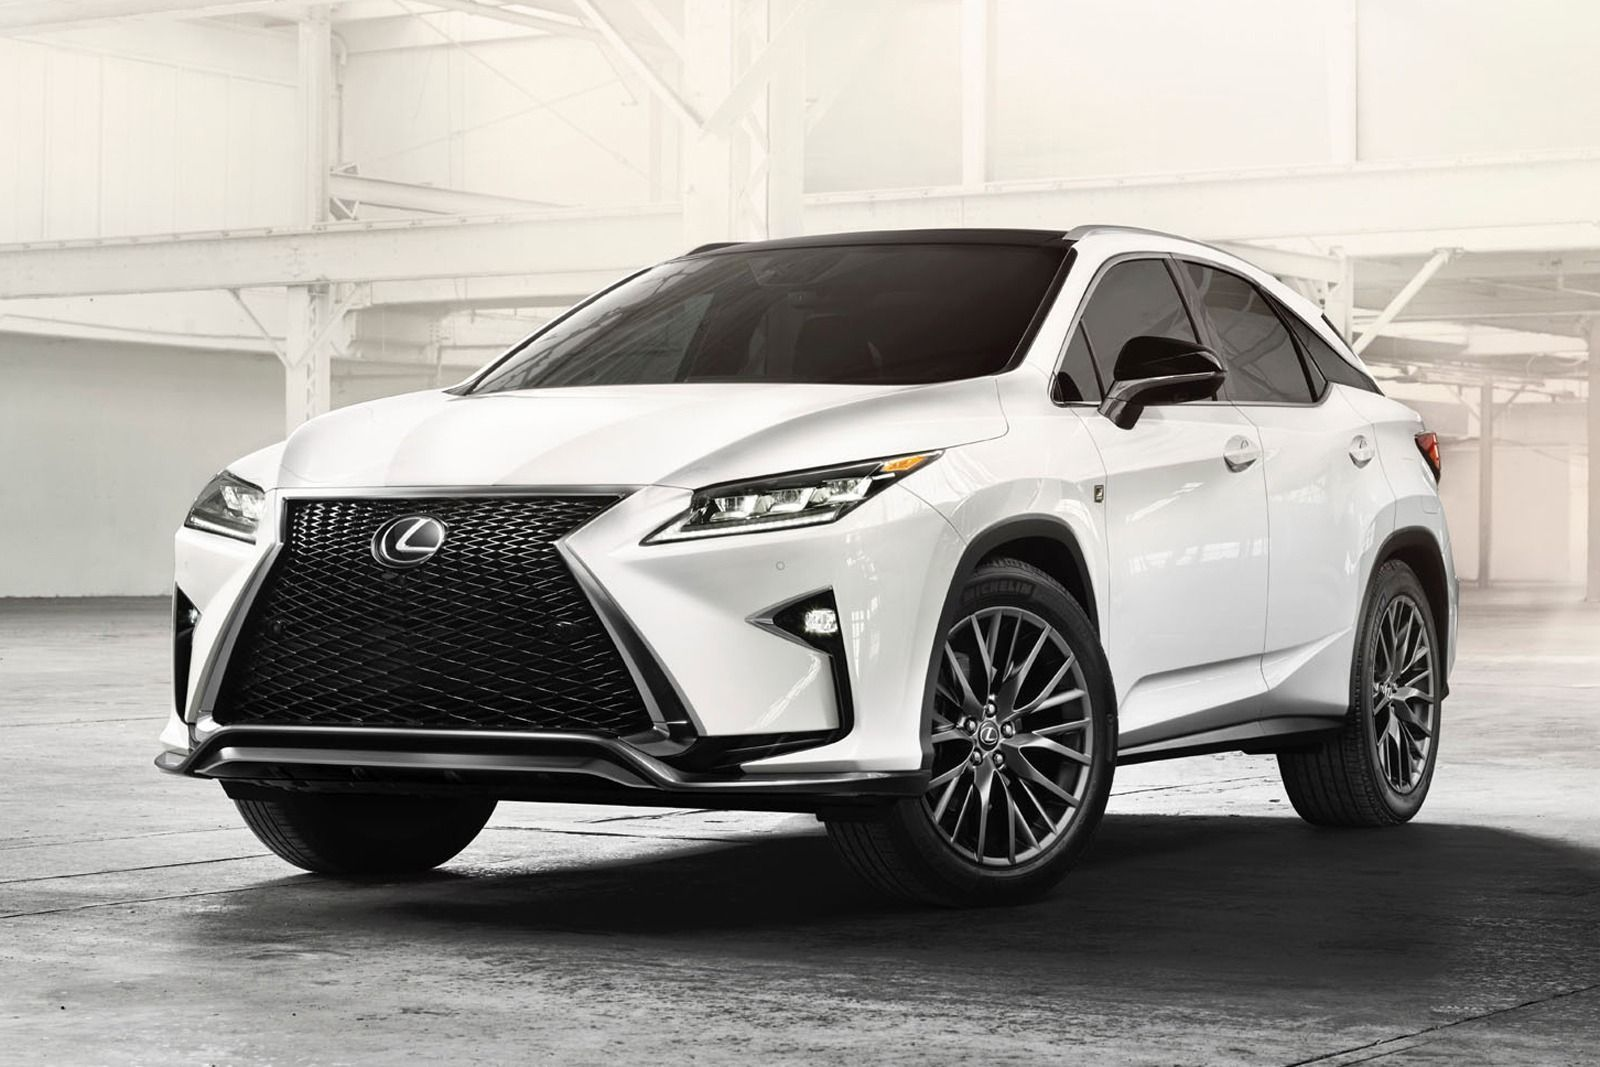 Best 20 lexus rx 350 price ideas on pinterest lexus suv price lexus rx 350 and lexus 350 price